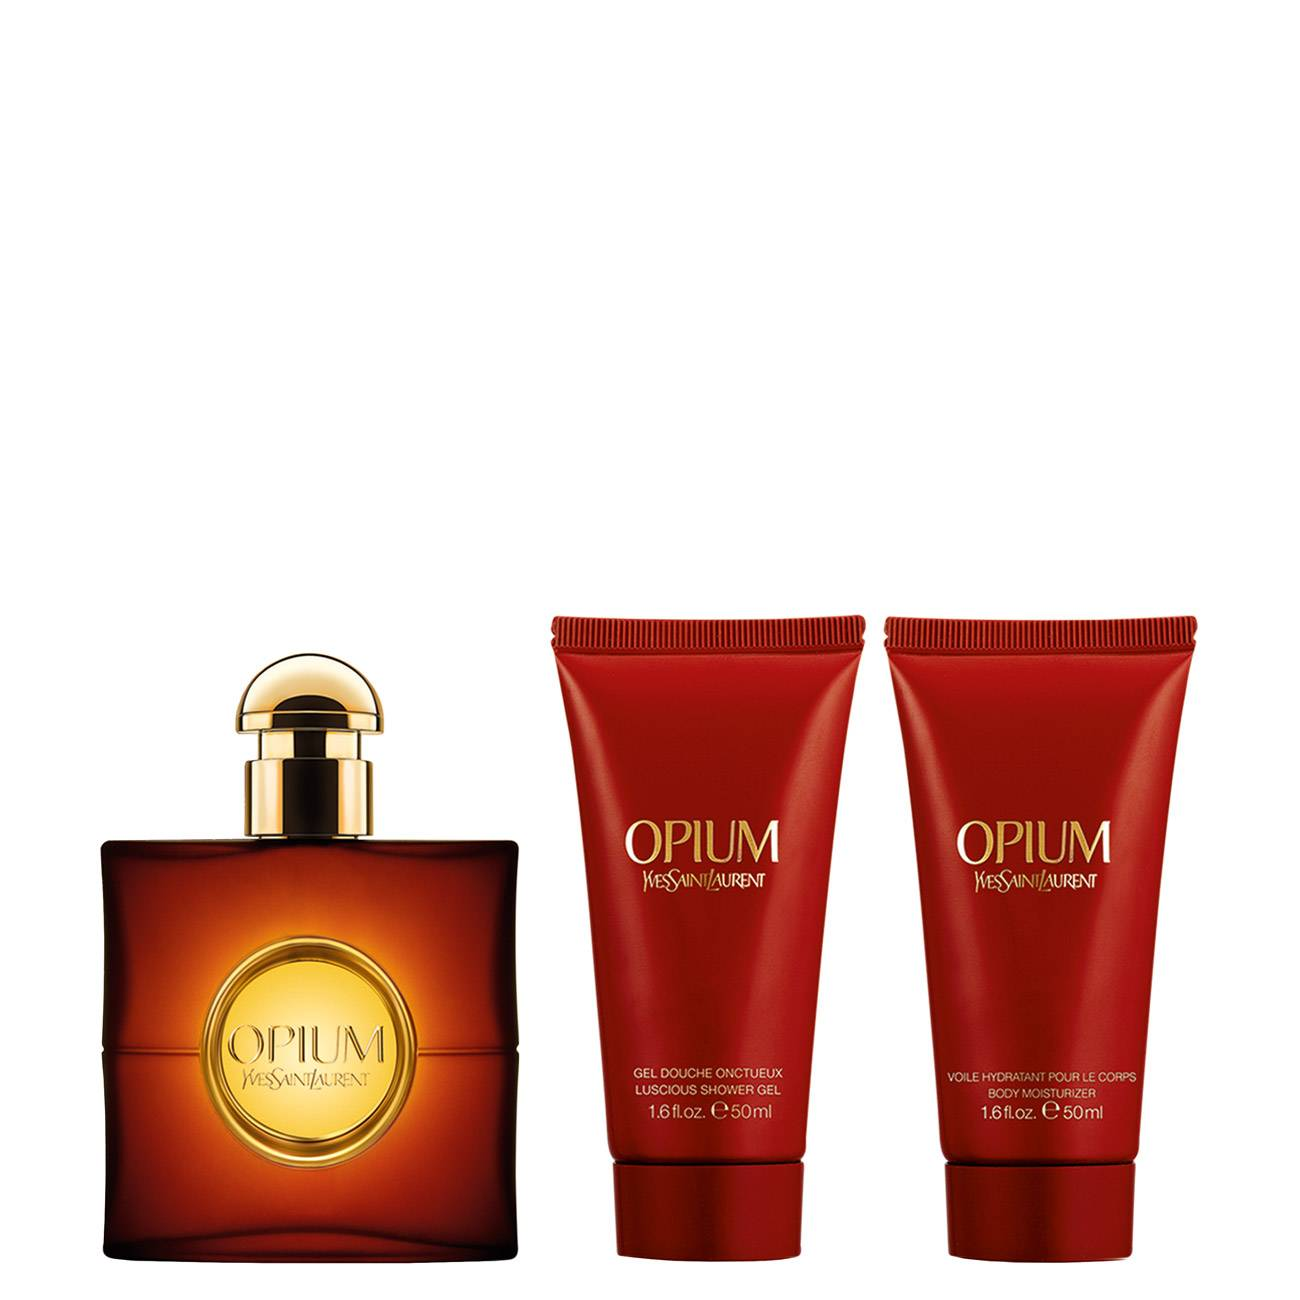 OPIUM SET 150 ML 150ml imagine produs